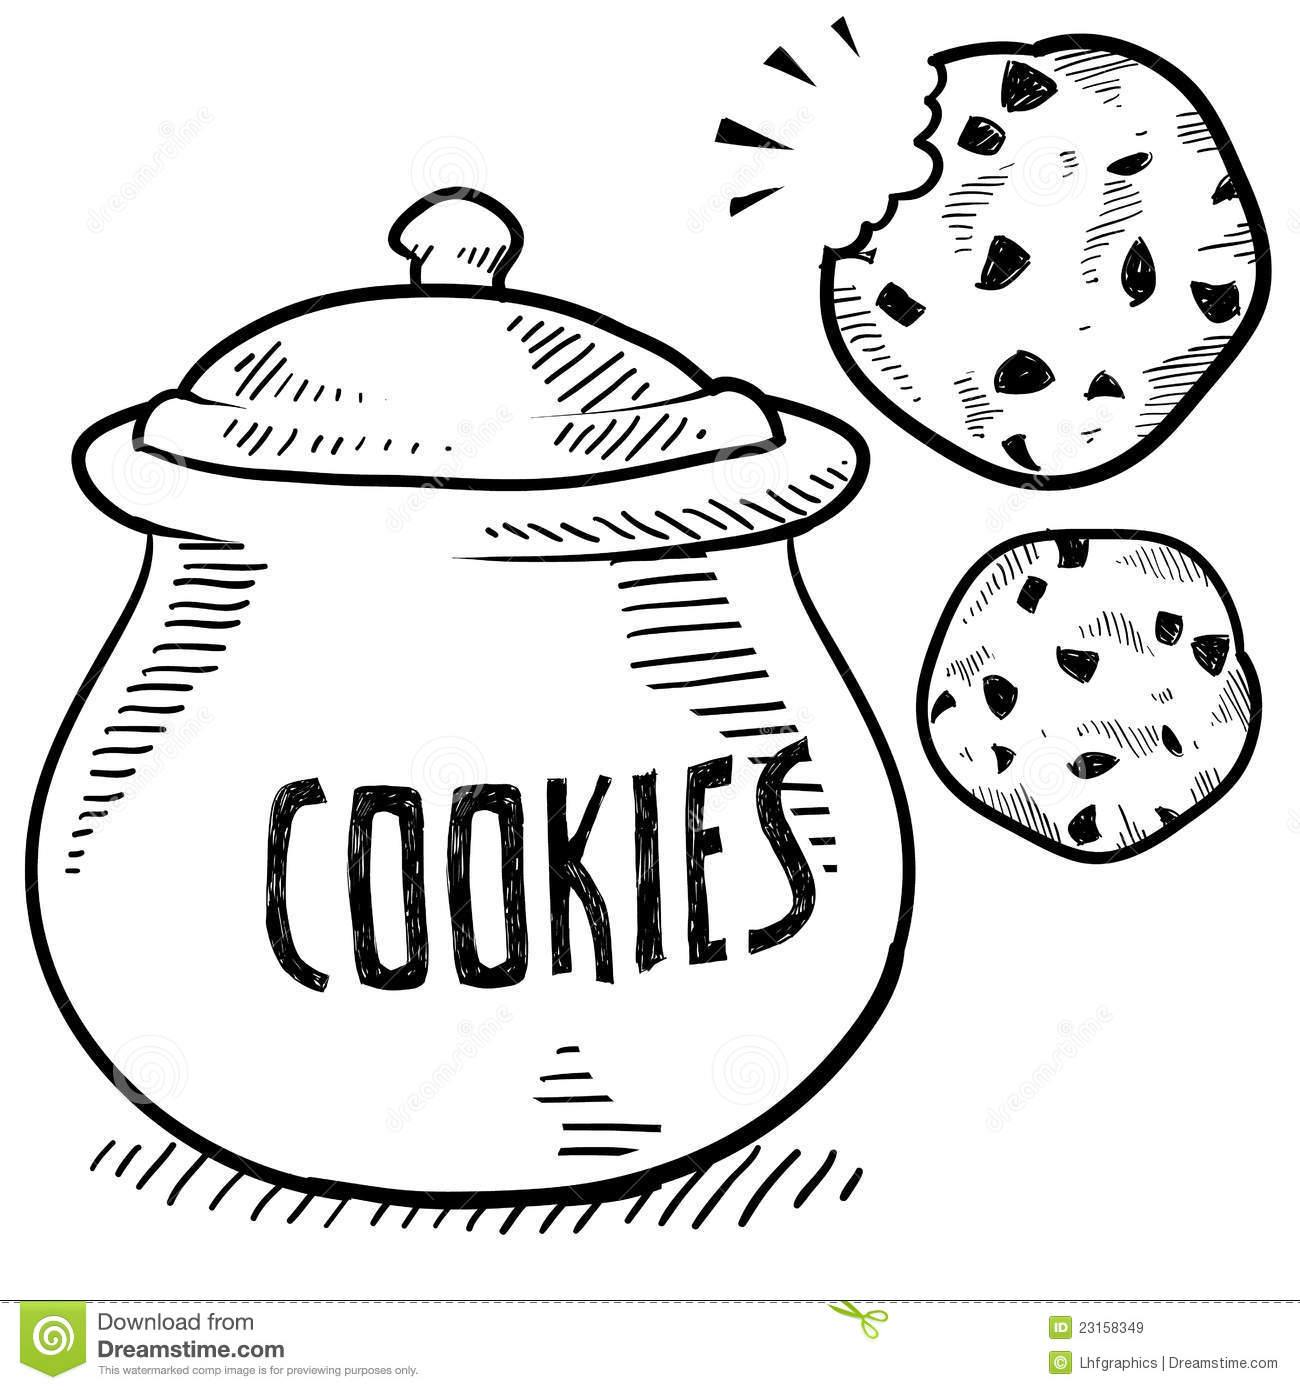 Ccokies in a jar clipart black and white clip art royalty free download Cookie Jar Clipart Black And White (102+ images in Collection) Page 3 clip art royalty free download